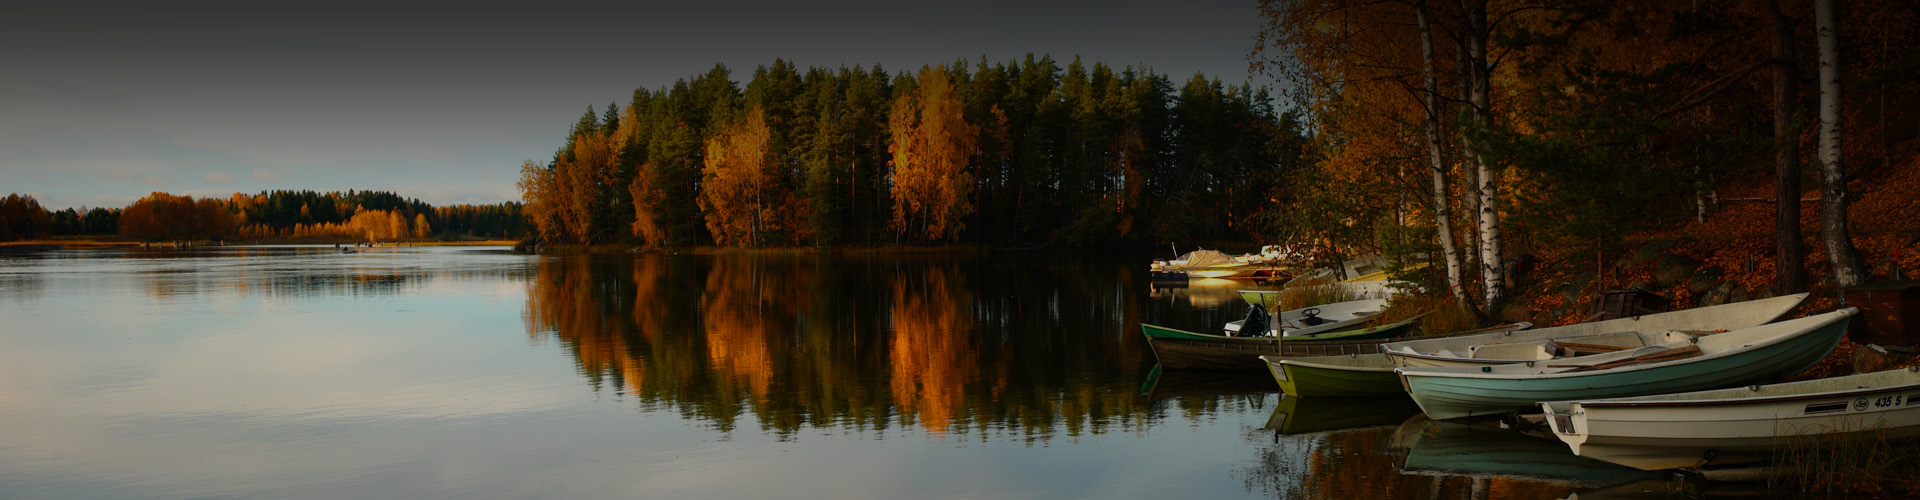 Photo of a forested lake during autumn